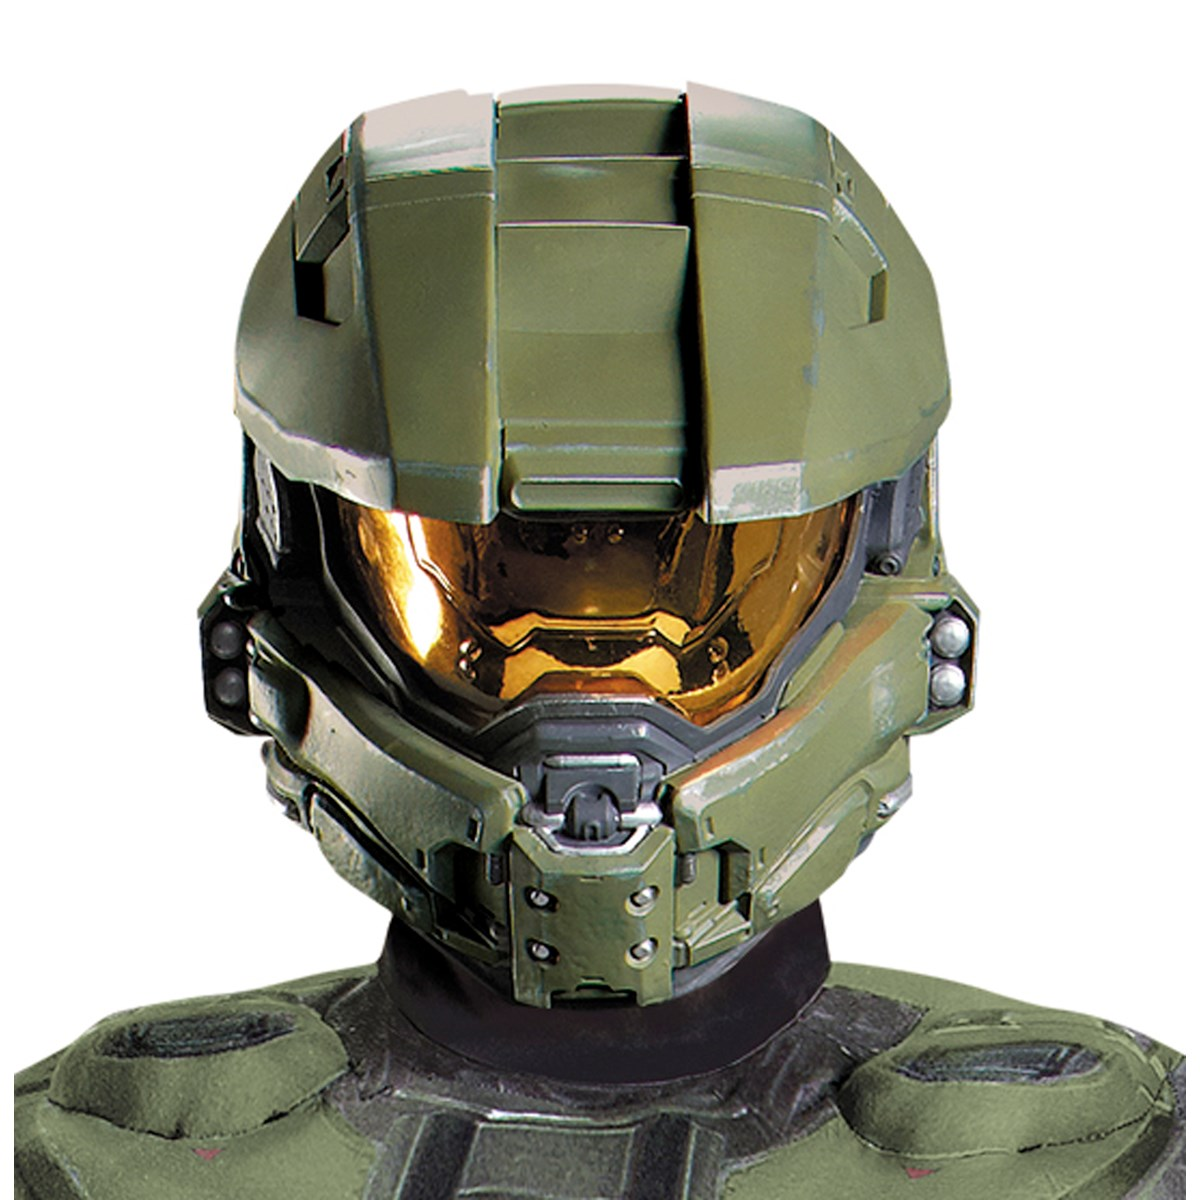 halo 3 master chief 2 piece vacuform mask adult buycostumescom - Halloween Halo